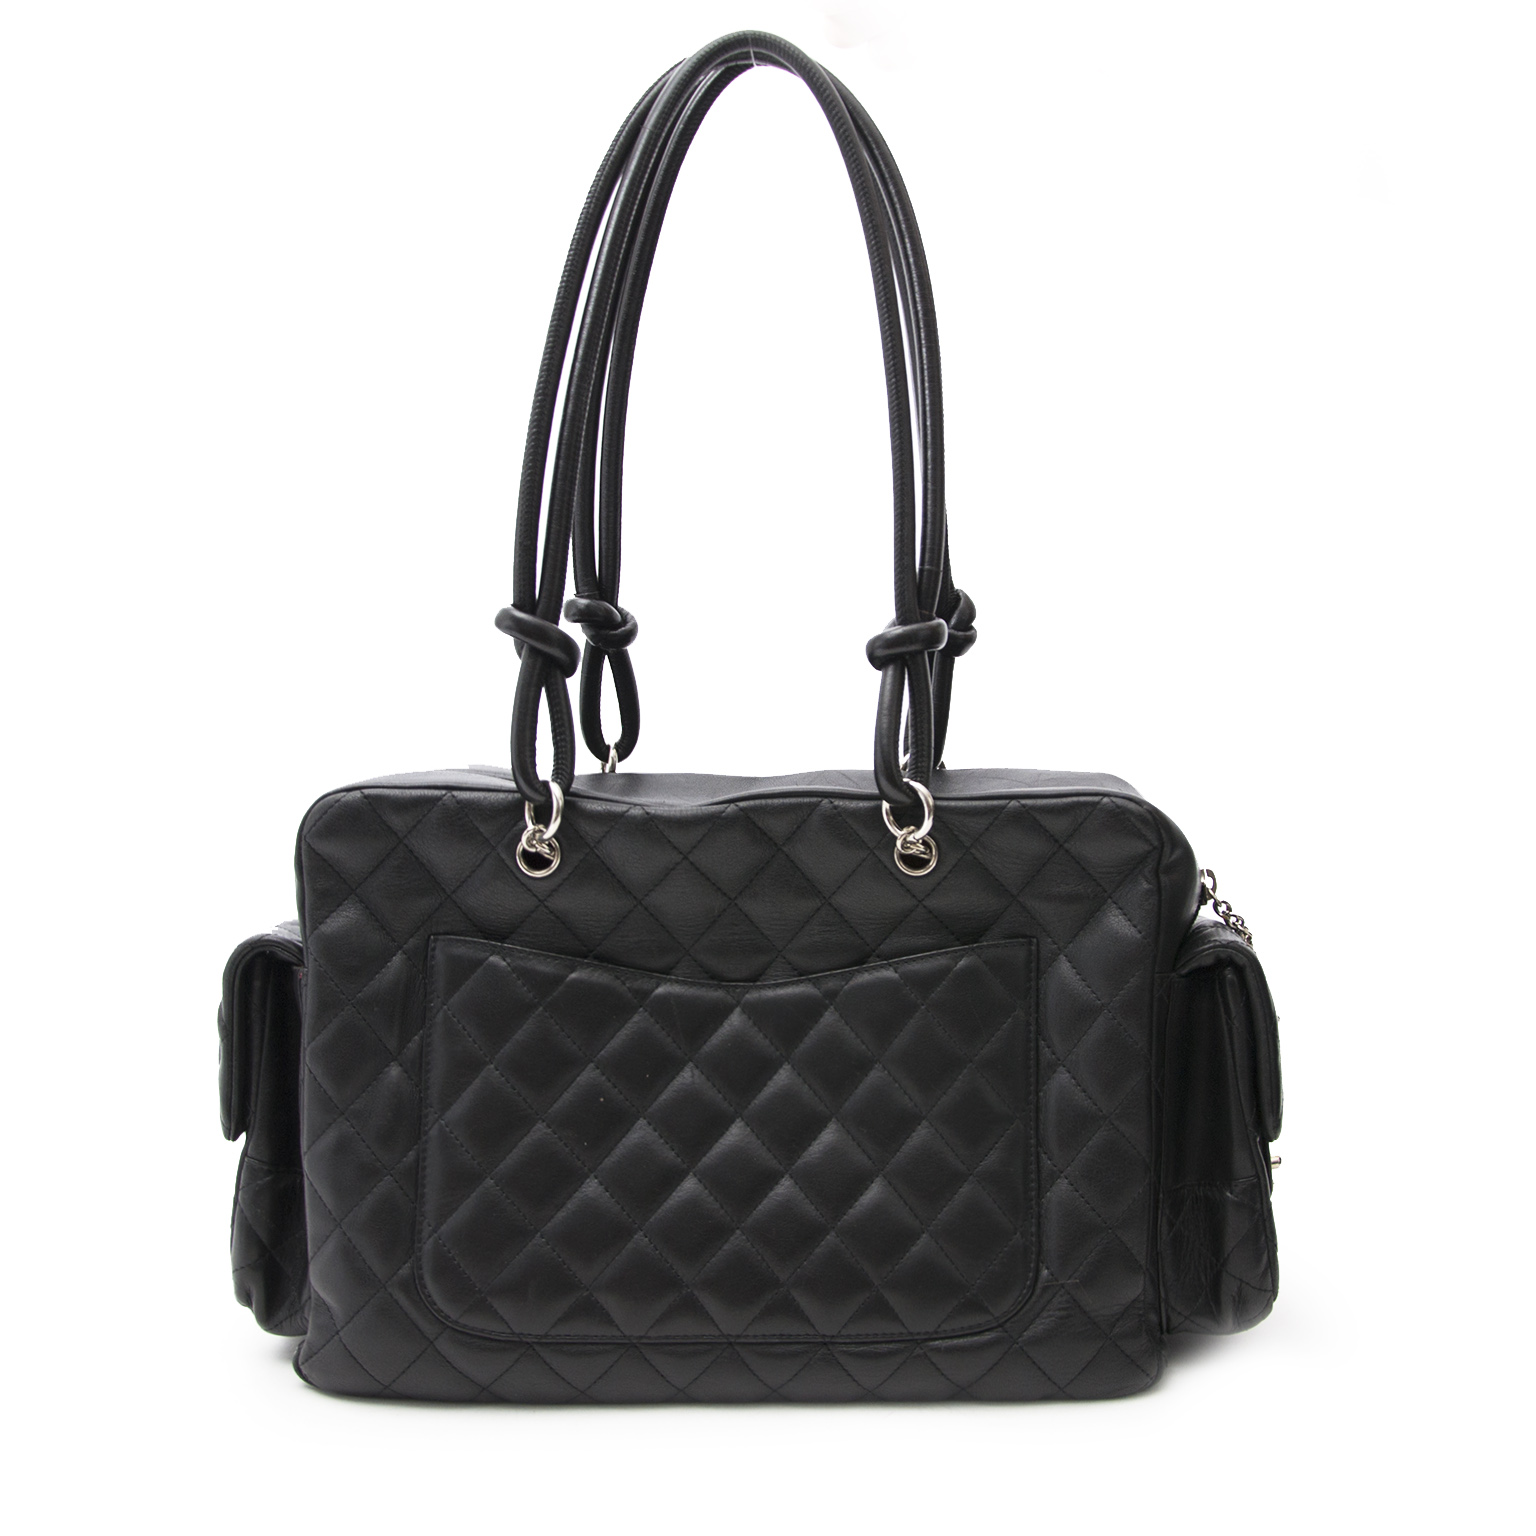 We buy and sell your secondhand designer handbags and accessories such as the Chanel Cambon Reporter Bag for the best price